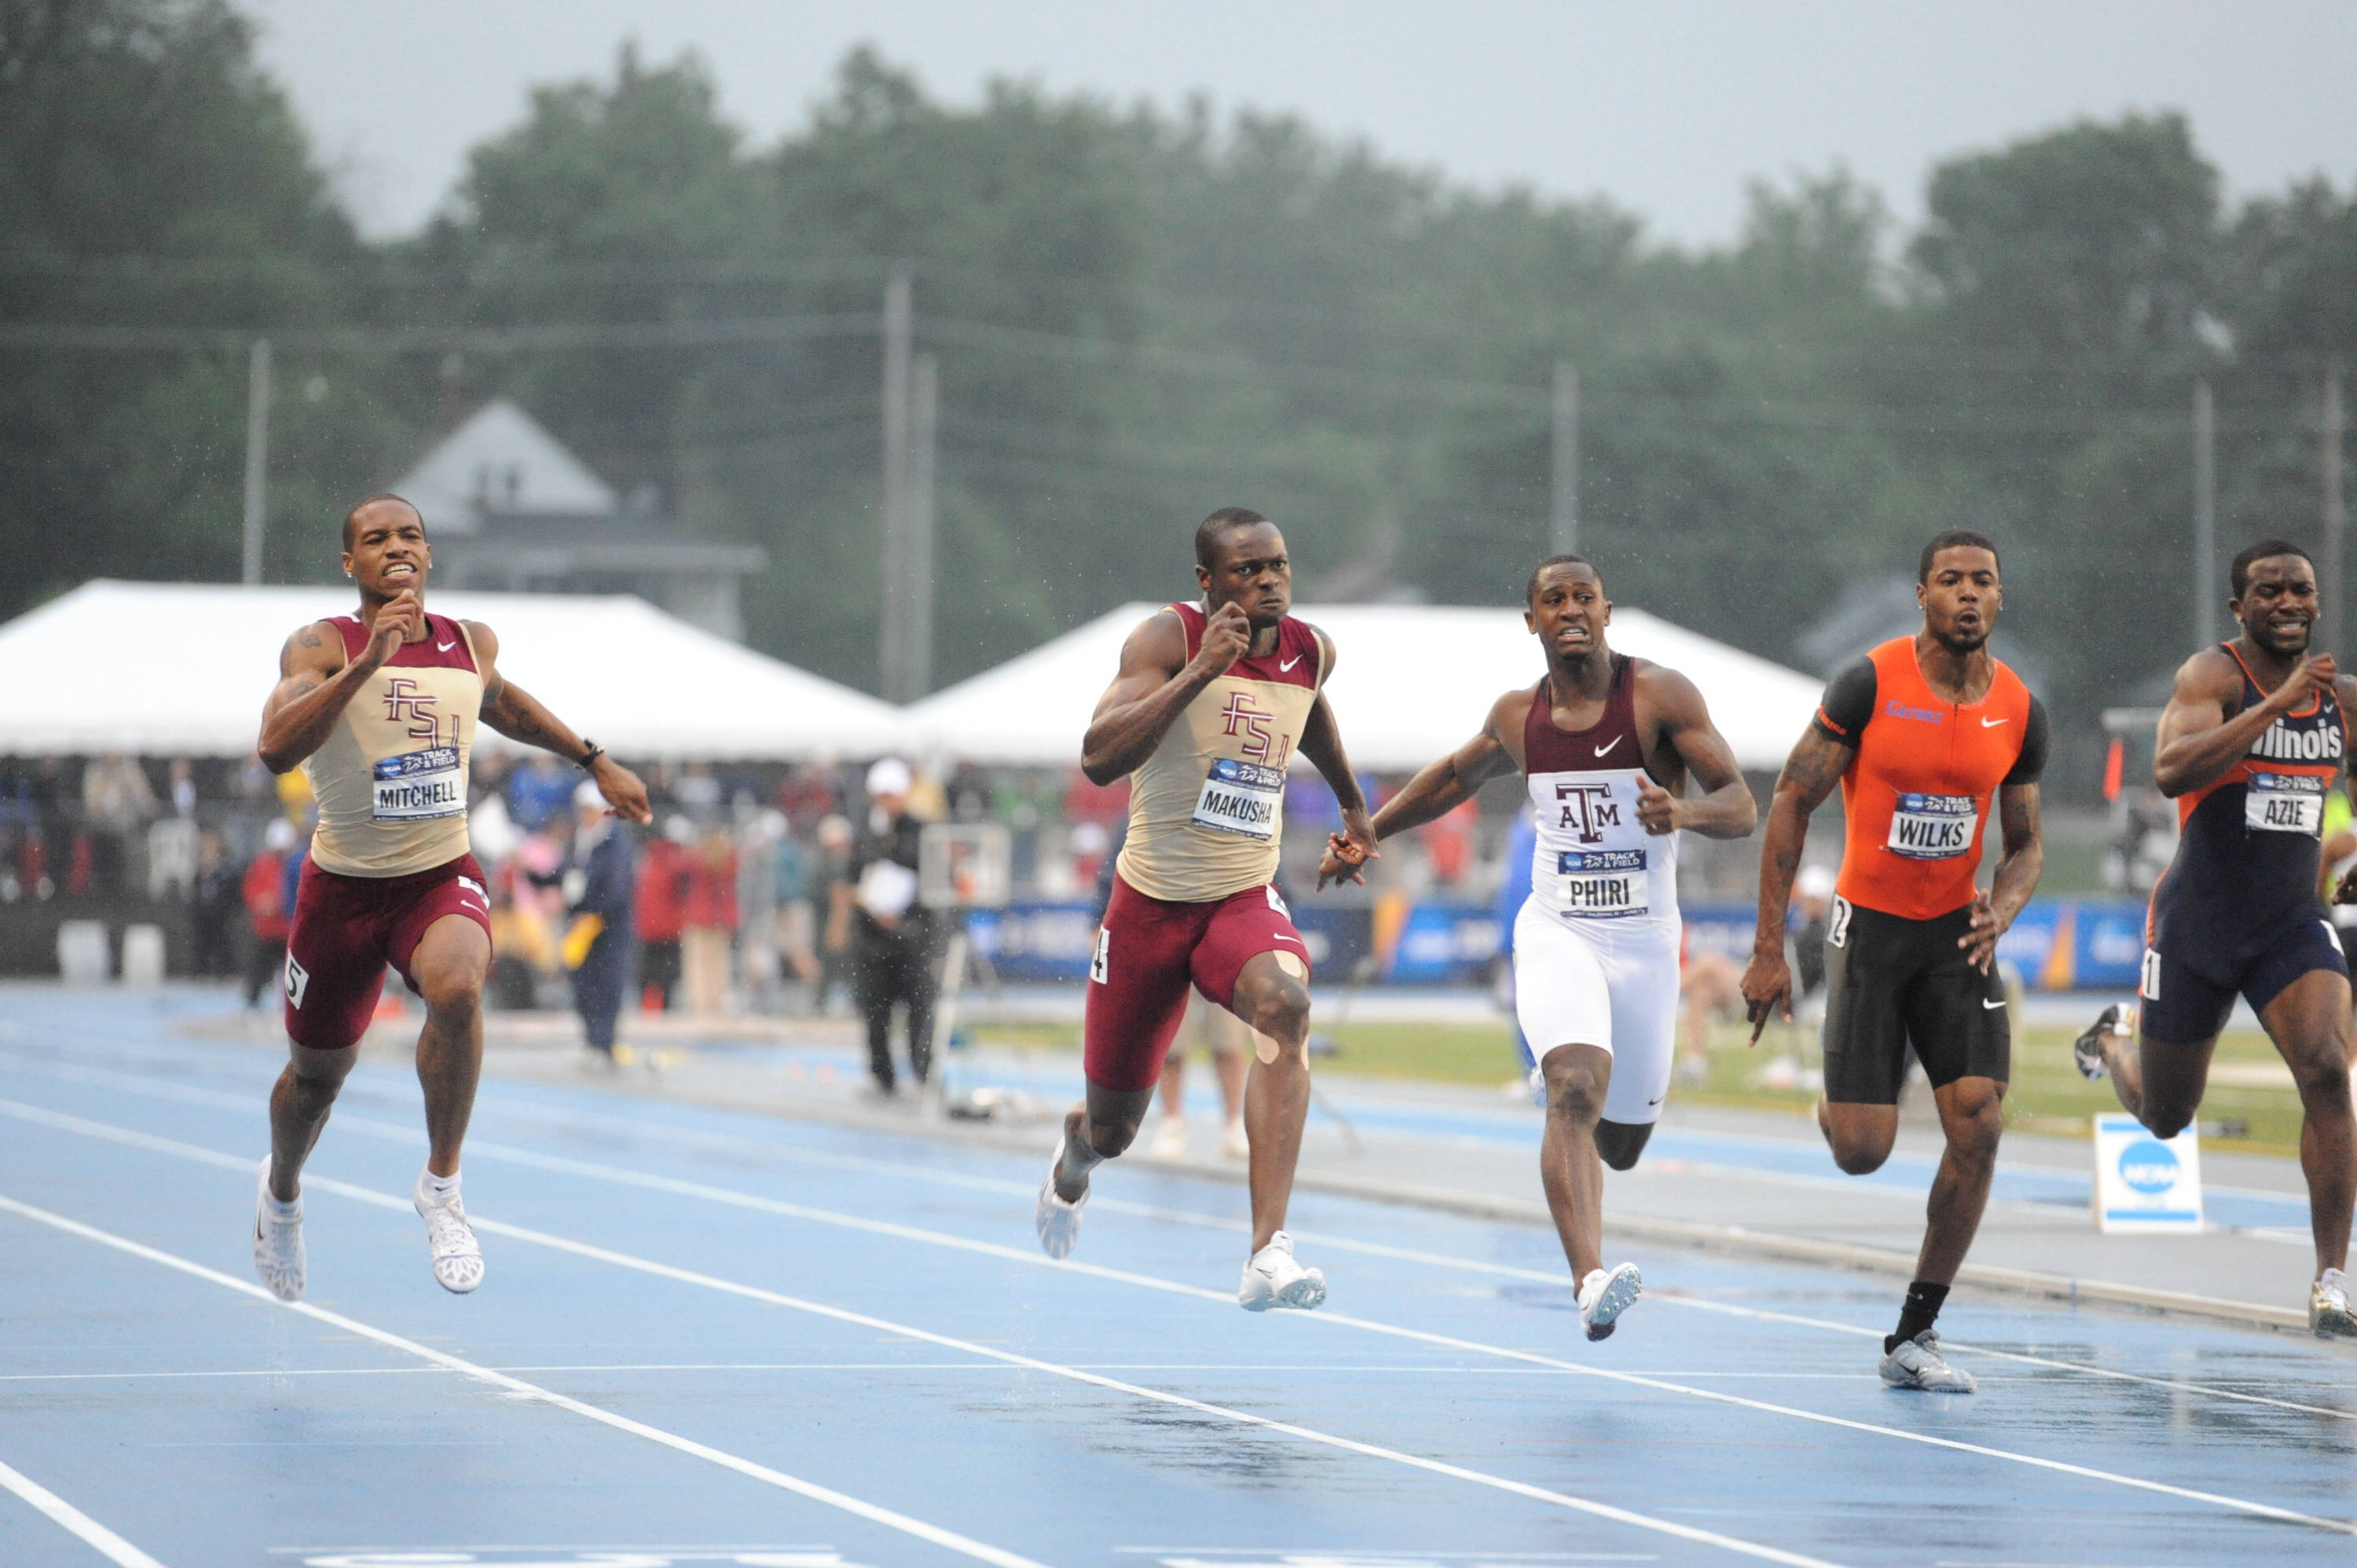 ... then blew away the field with an NCAA Championship record 9.89 performance in the finals for his first victory at Drake University's track.